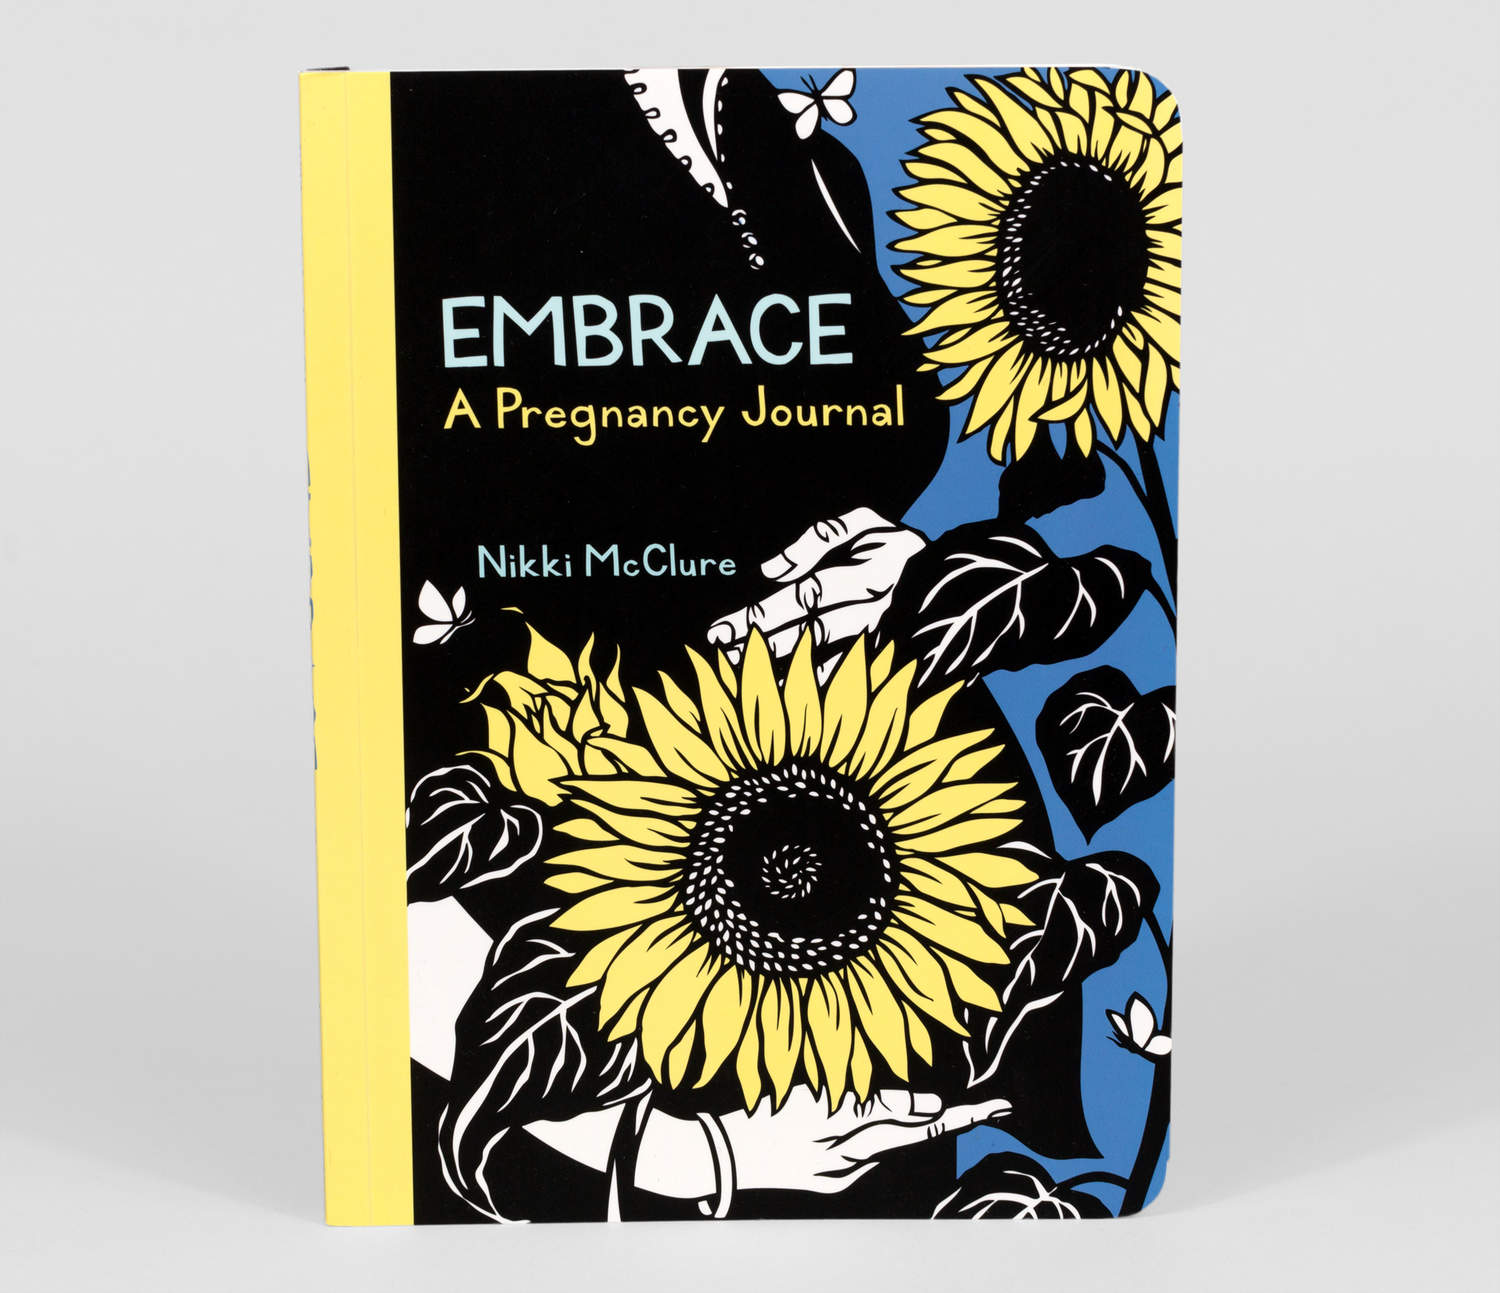 Embrace A Pregnancy Journal